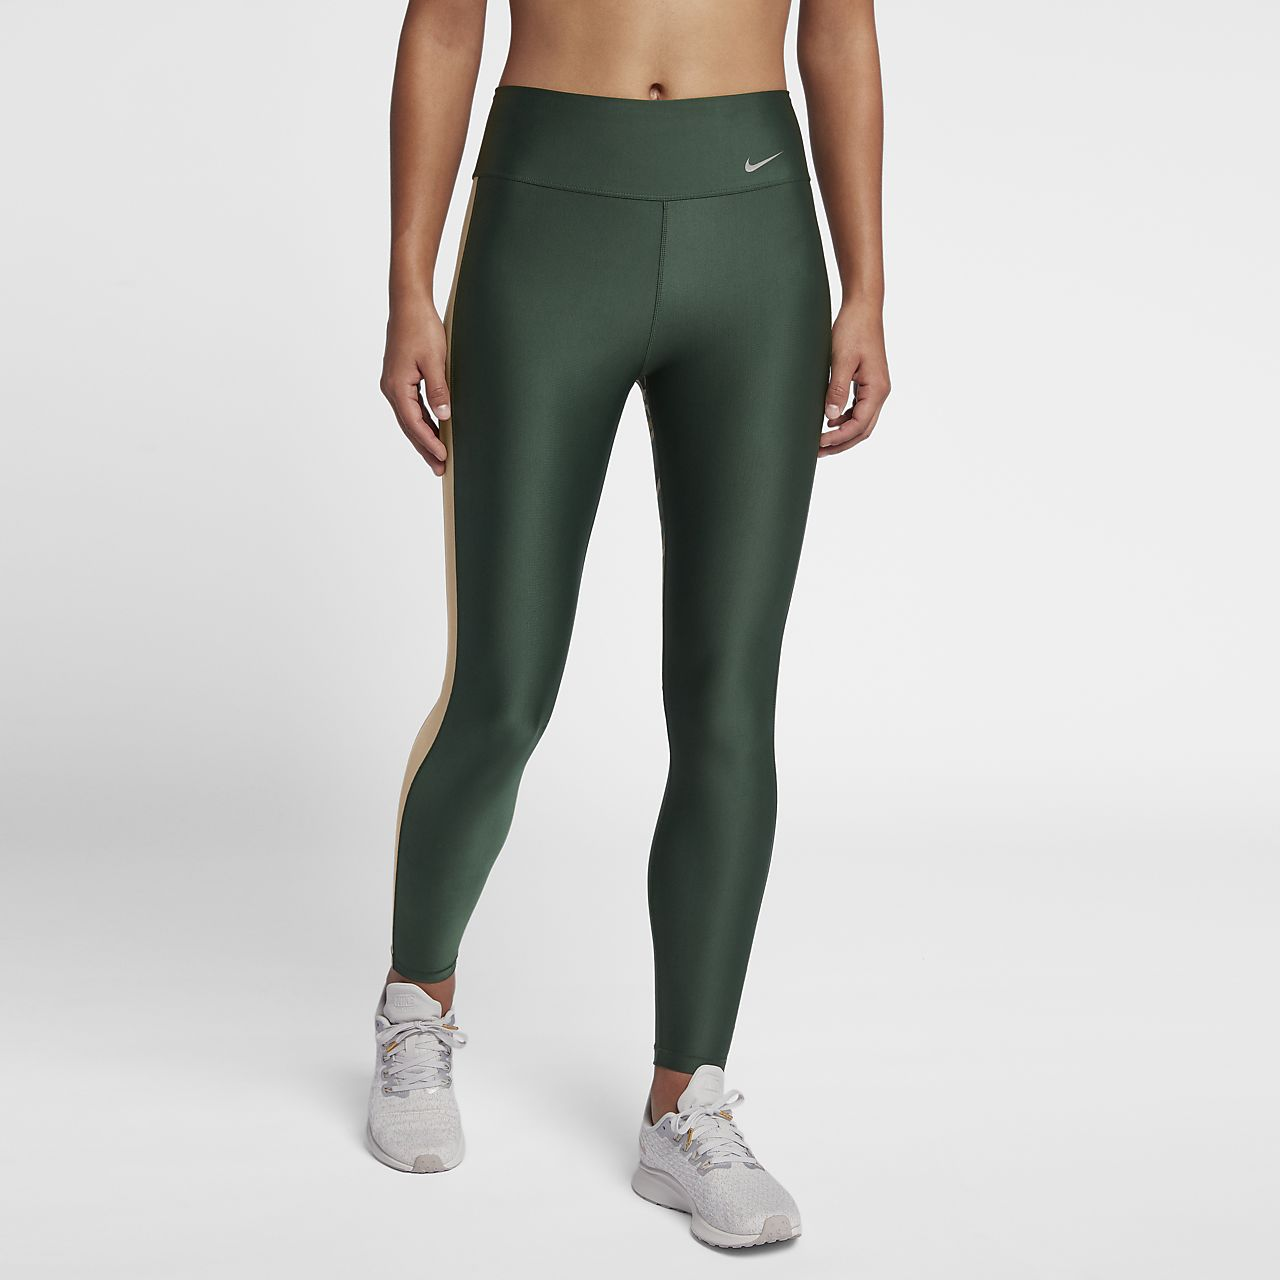 Nike Women's Training Tights